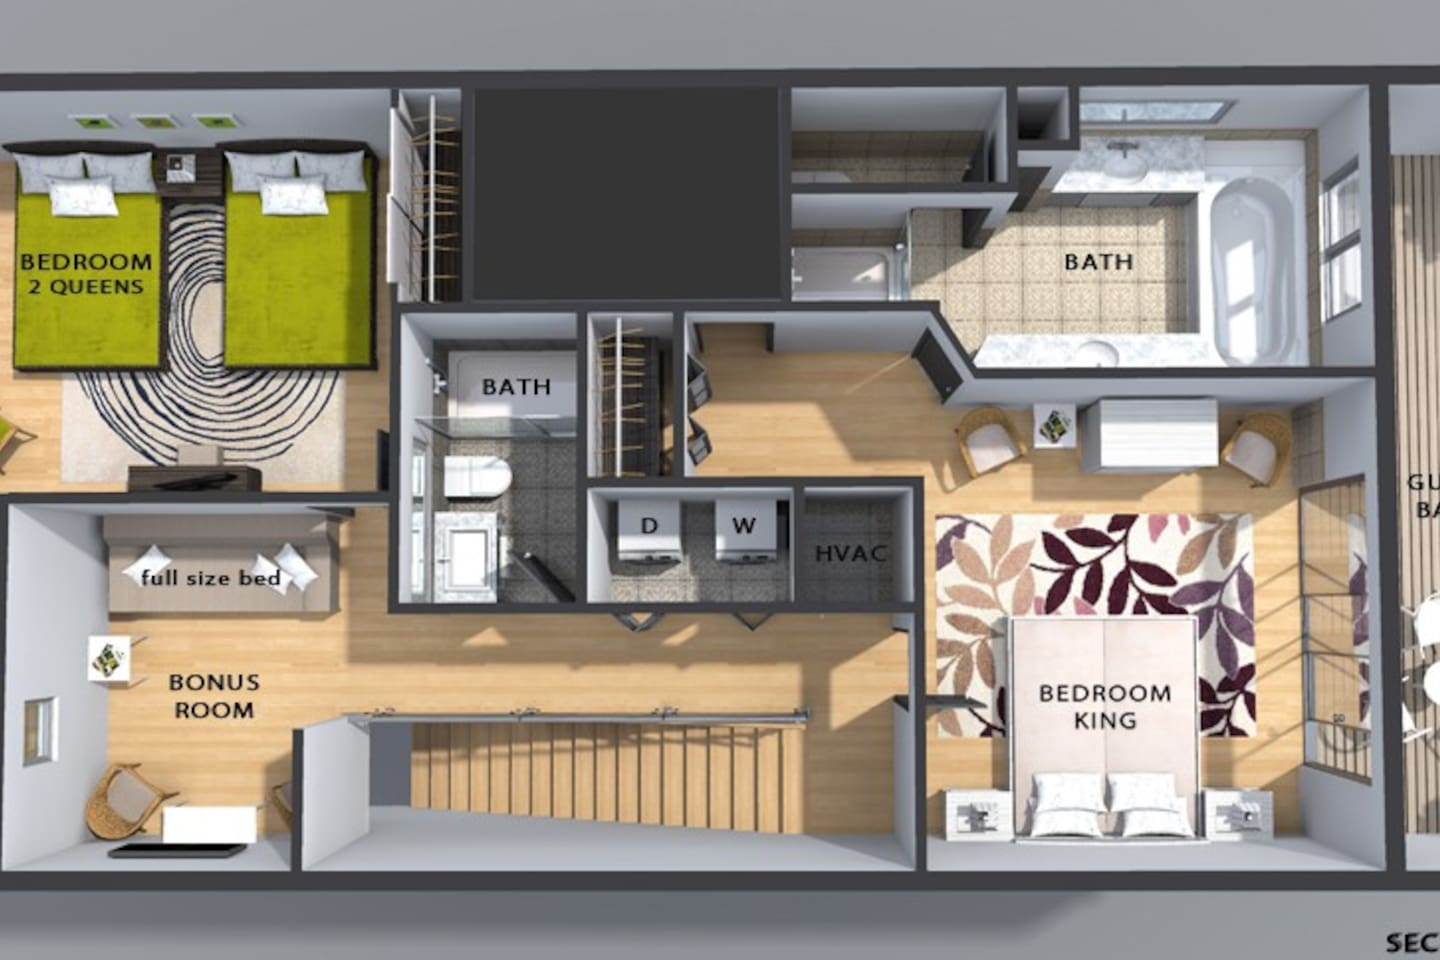 SeaBreeze A Navarre Beach Secret Townhouses for Rent in Navarre – King Of Queens House Floor Plan